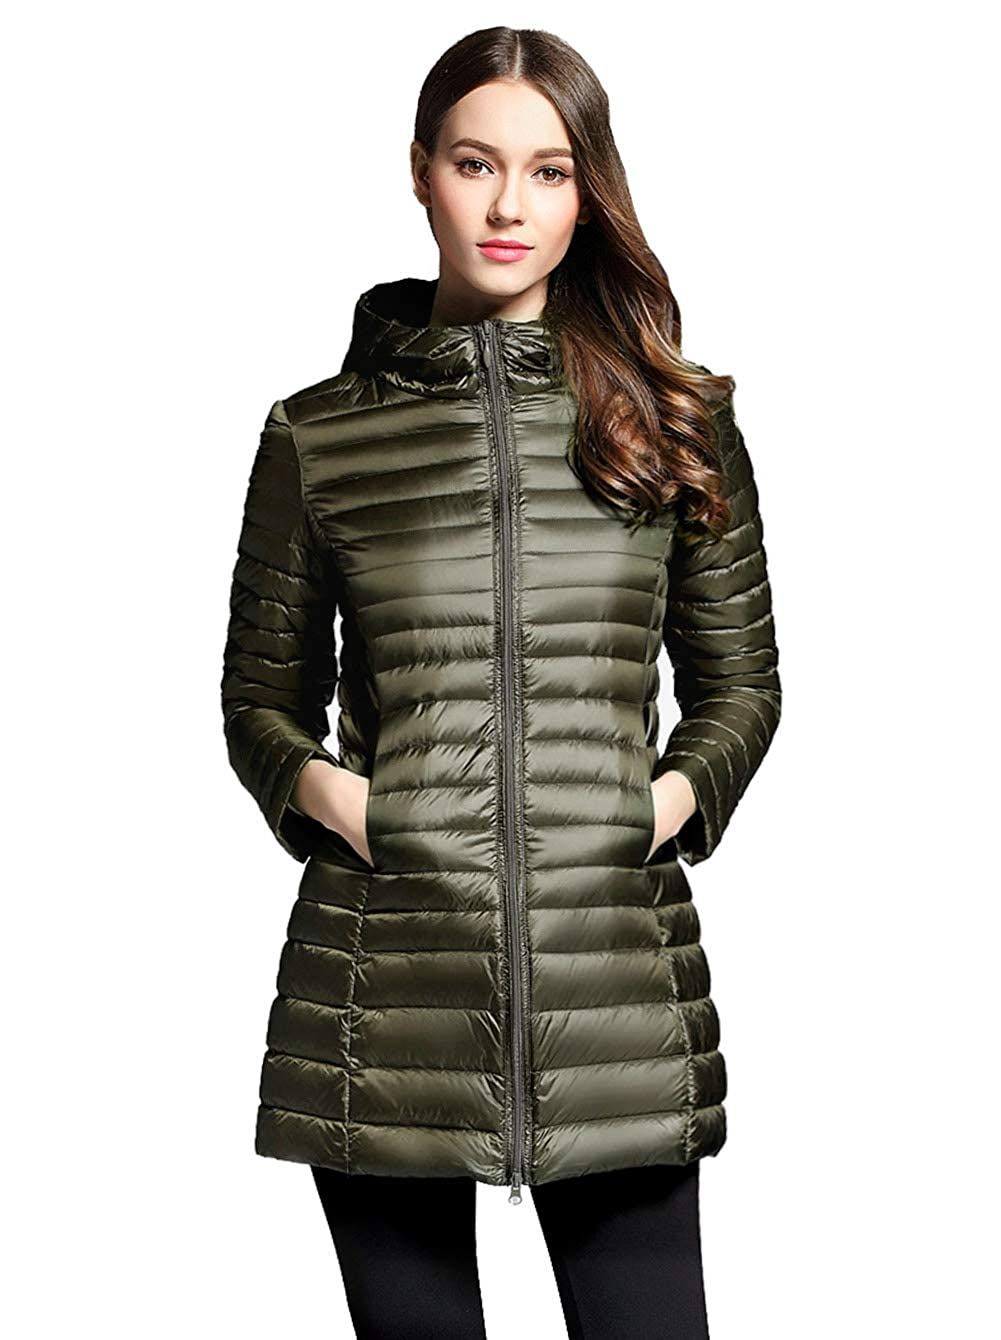 ffb56aa51 Sunseen Women's Lightweight Hooded Packable Slim Warm Outdoor Sports Travel  Insulated Parka Outerwear Puffer Jacket Down Coat